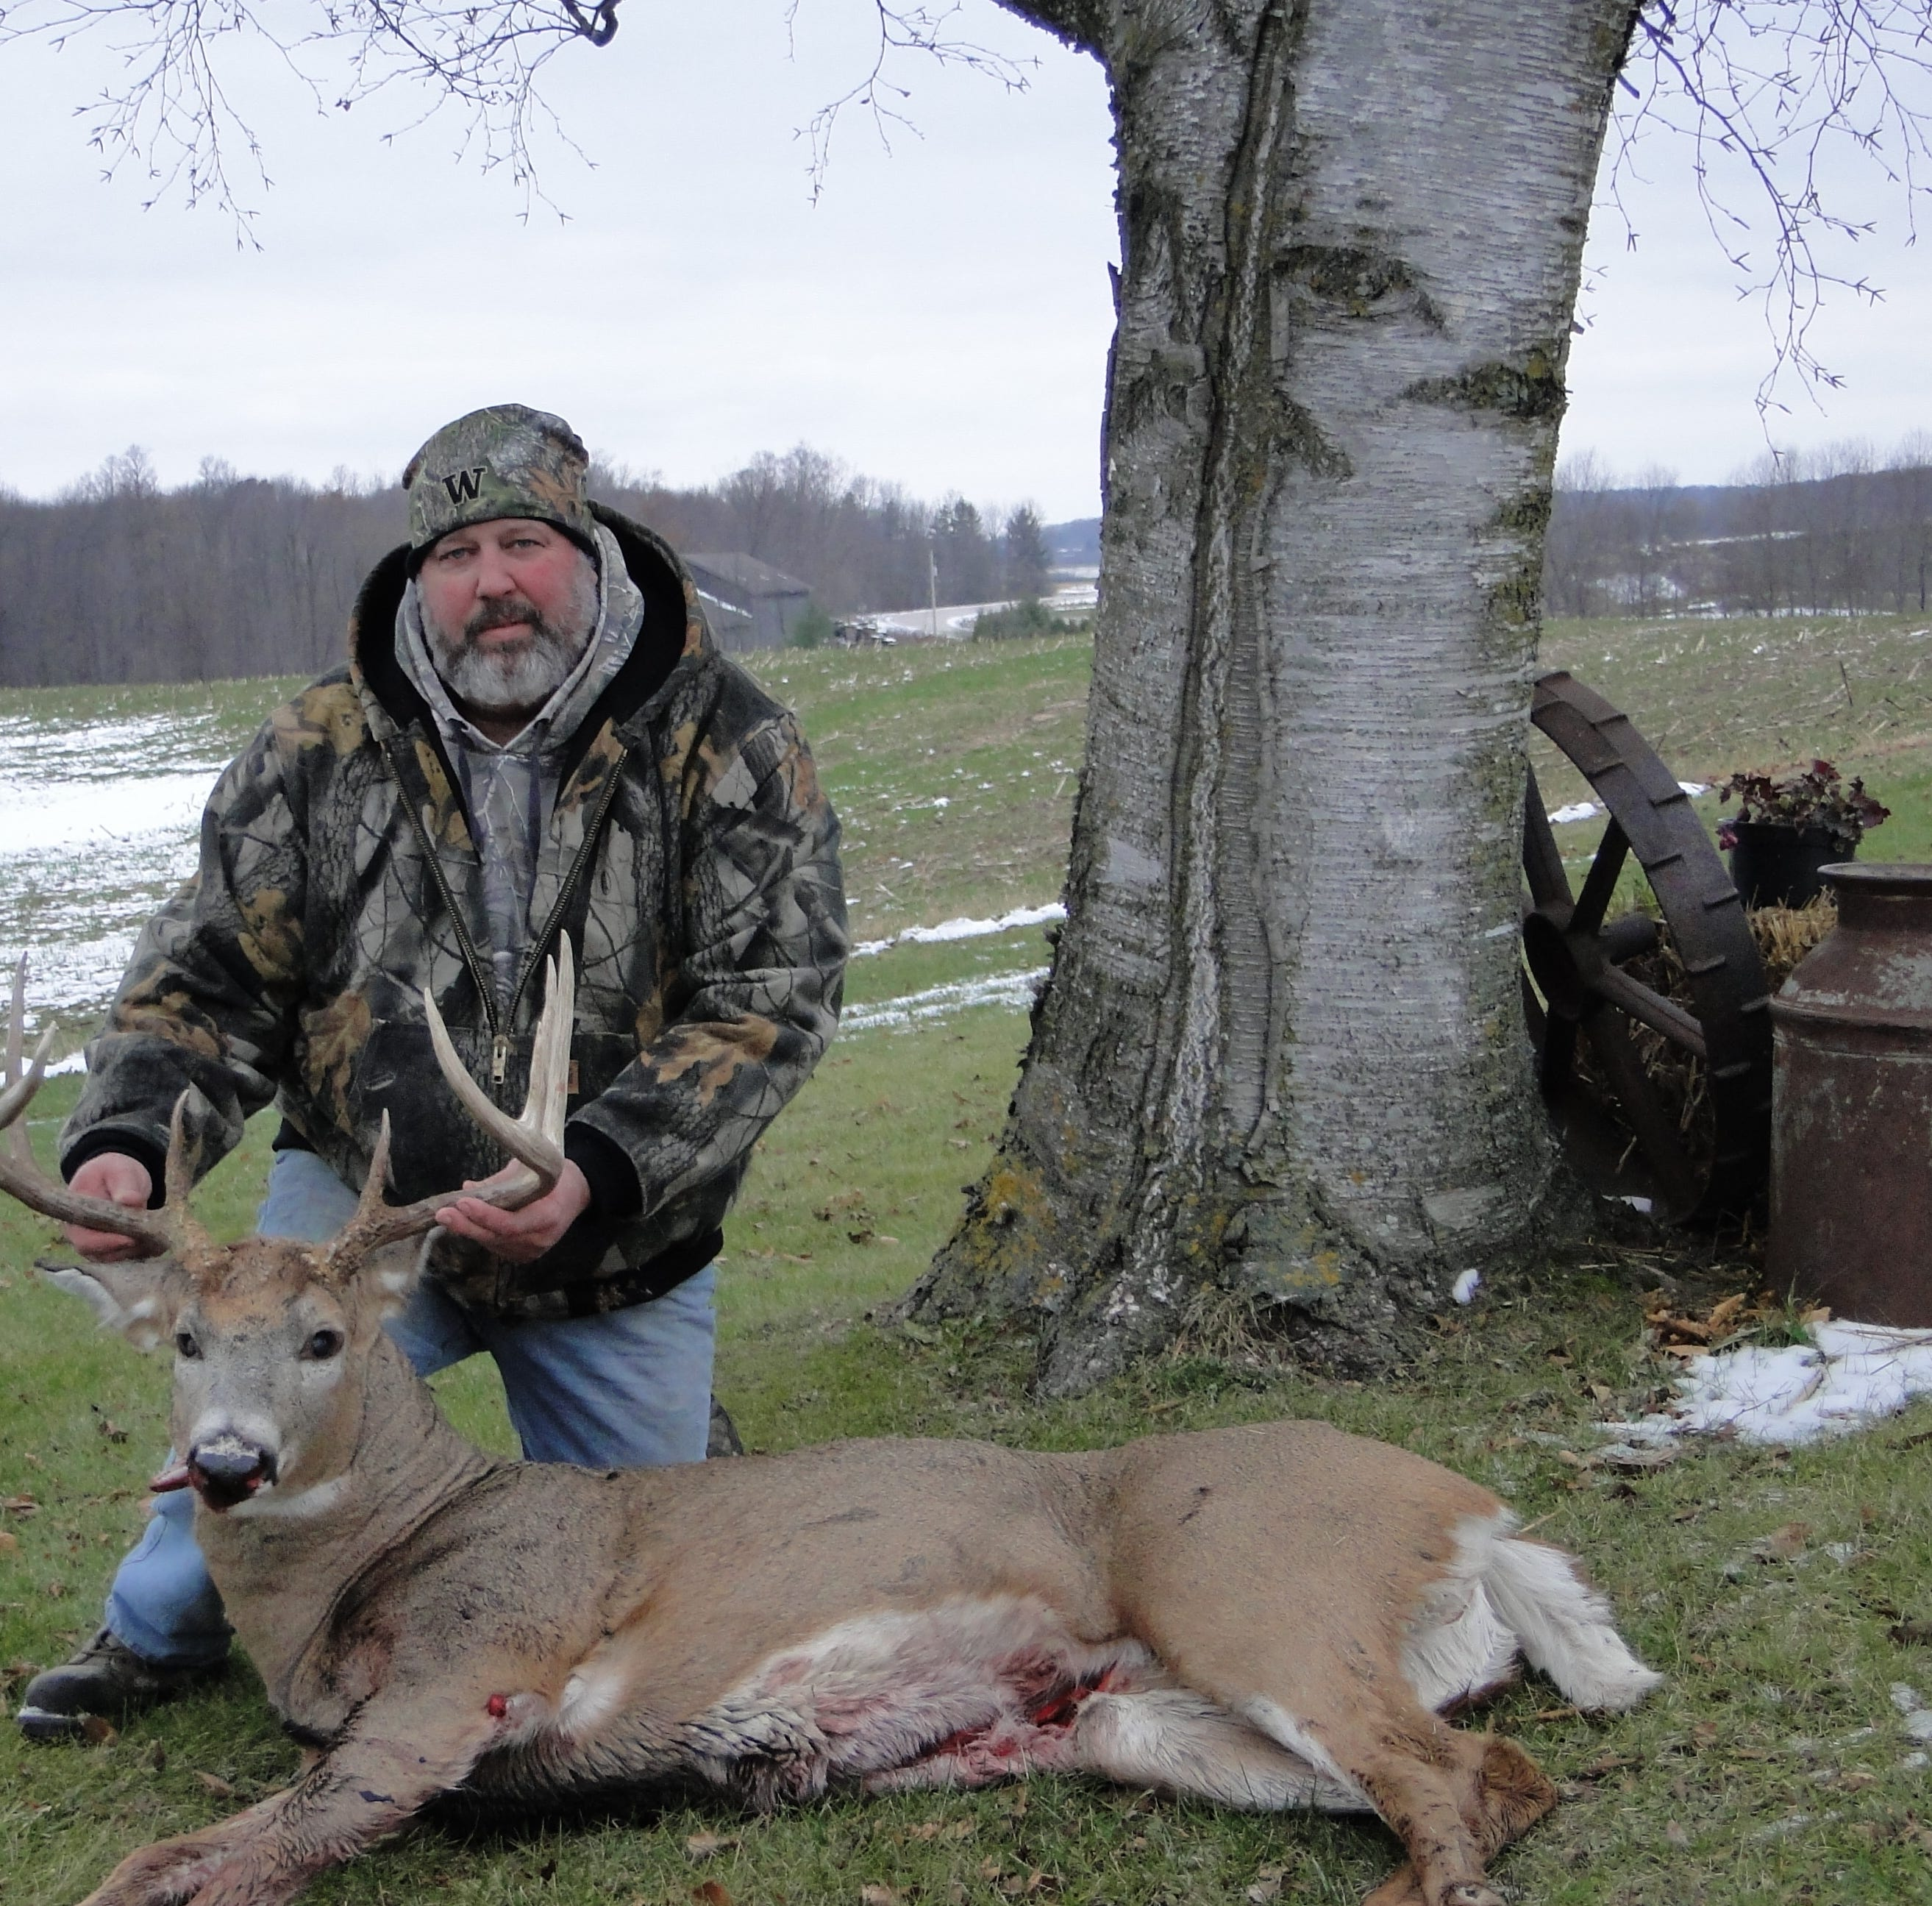 Manitowoc outdoors news: St. Nazianz man gets 10-point buck in Wisconsin bow deer hunt